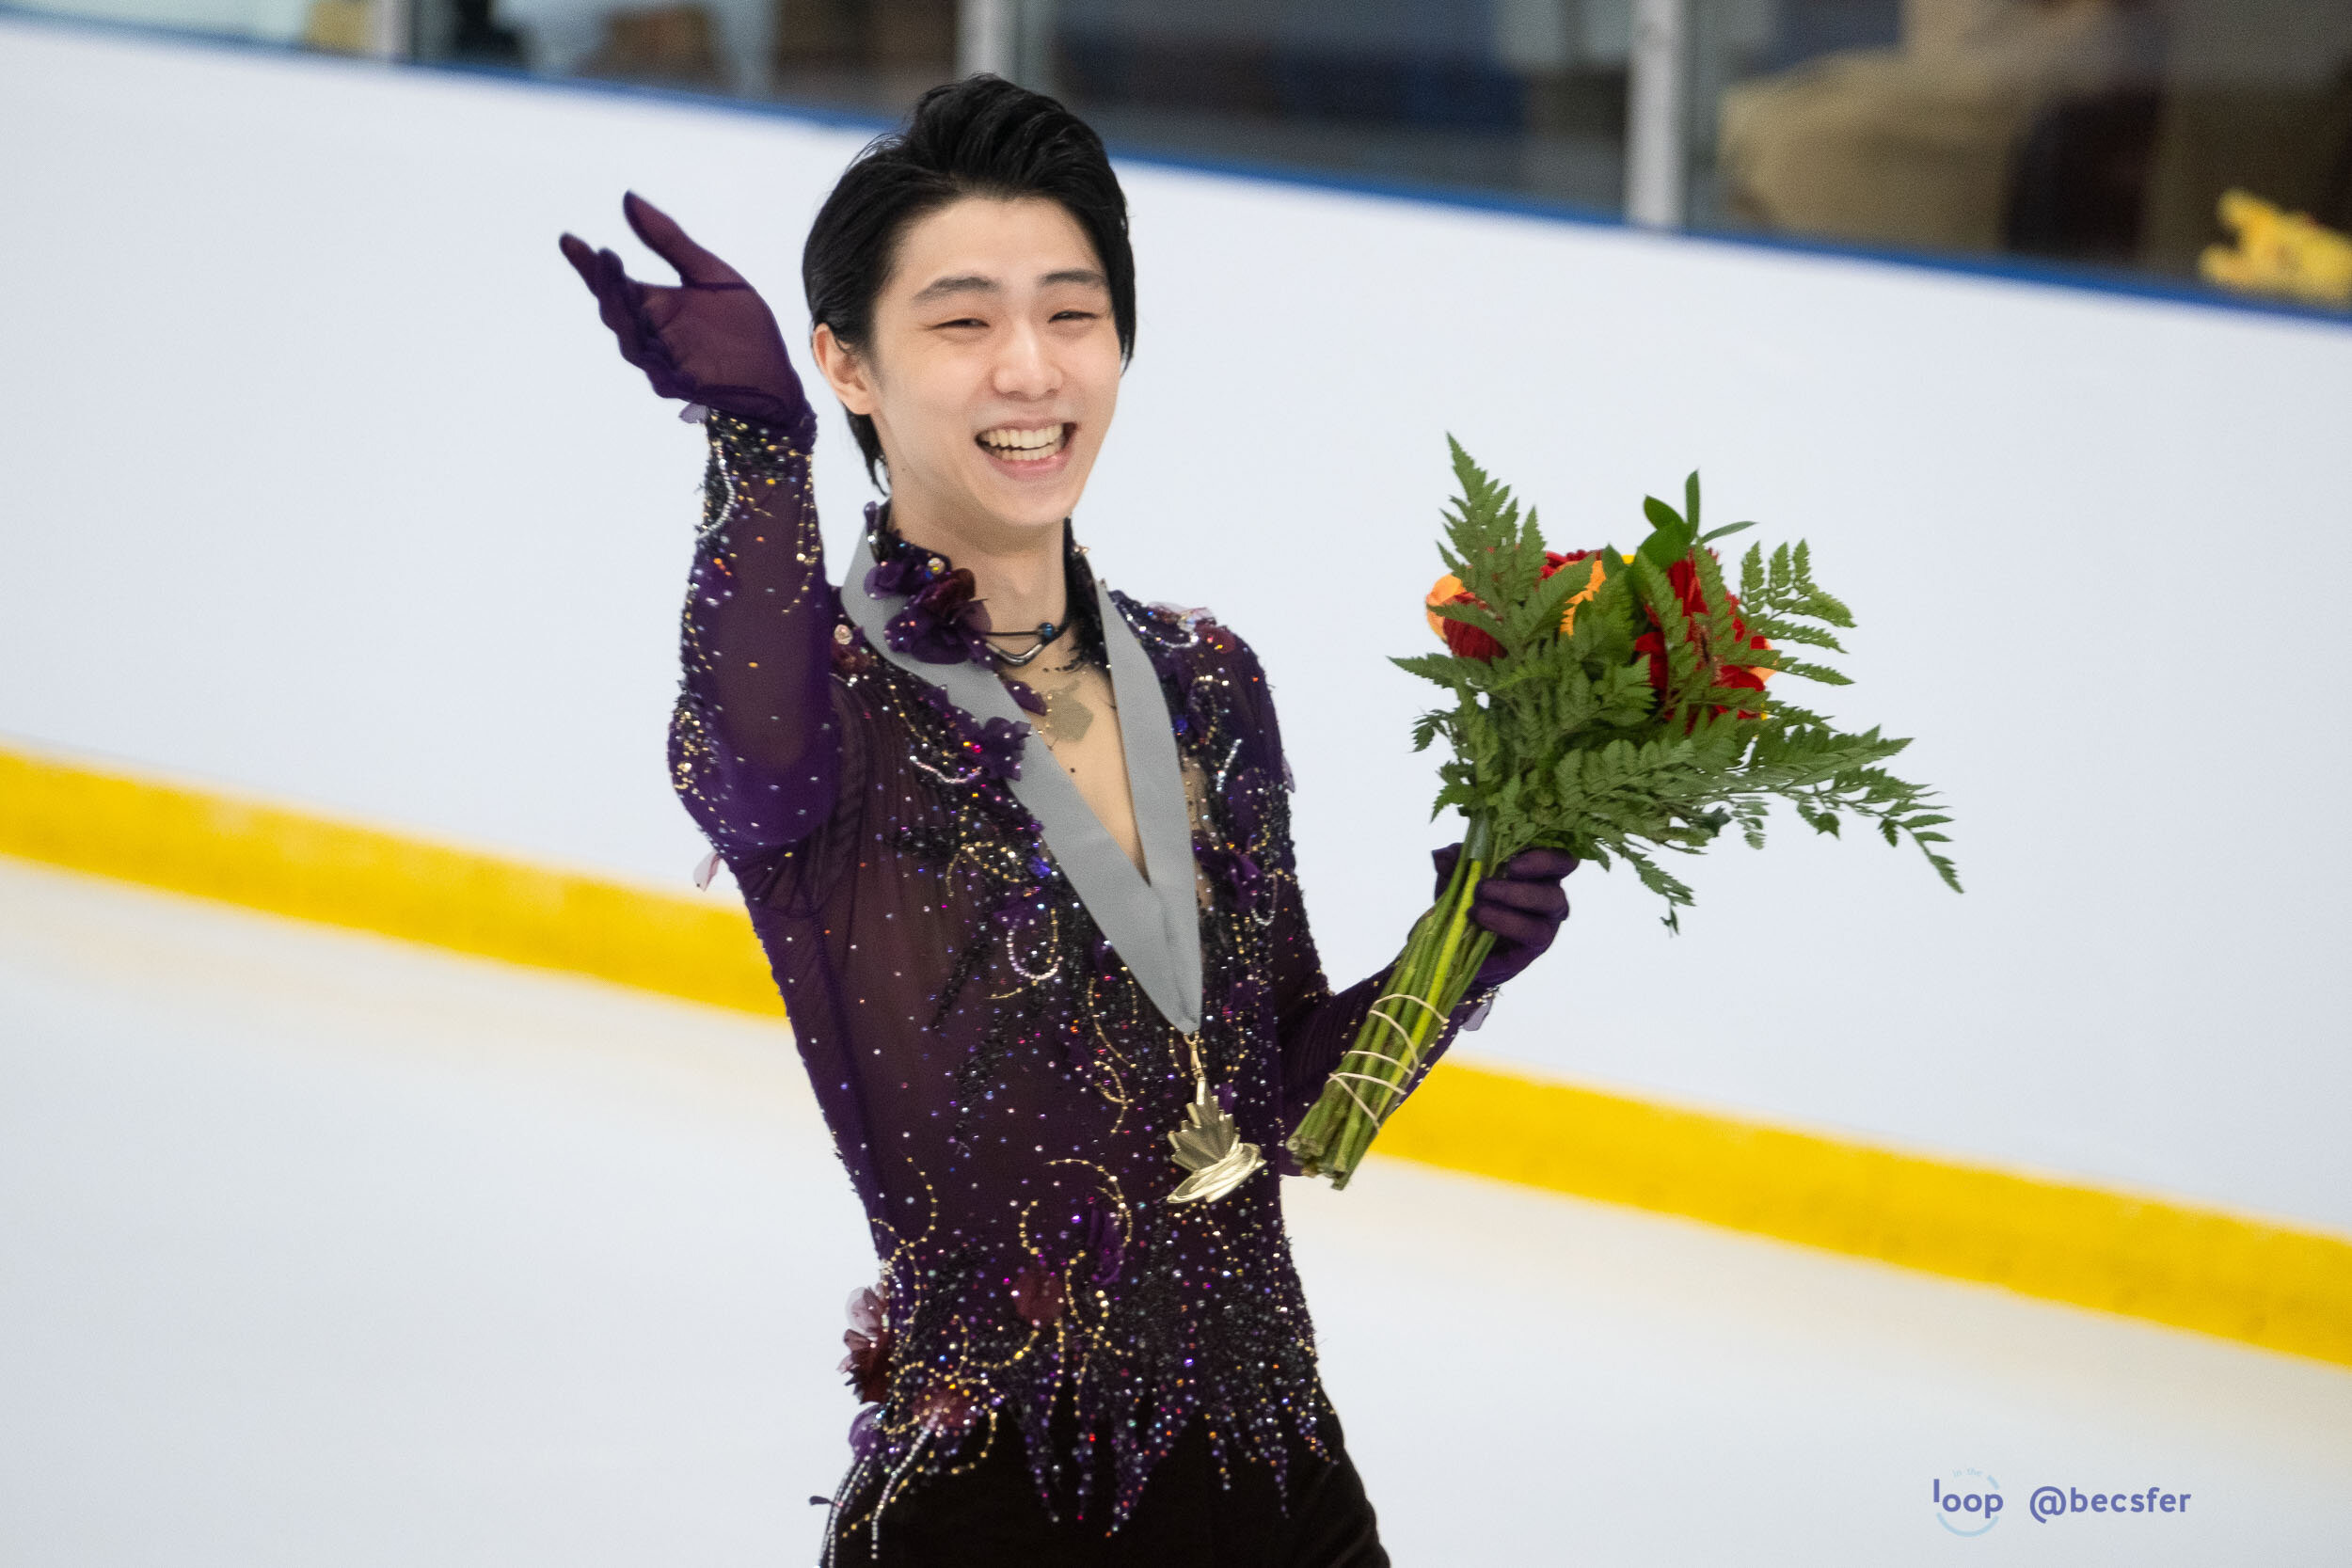 Yuzu cracking up at the Gabb, Lae's, and my chaotic unsightly brainchild of a banner for him. Sometimes throwing taste and aesthetics out the window is worth it to make your favorites laugh.